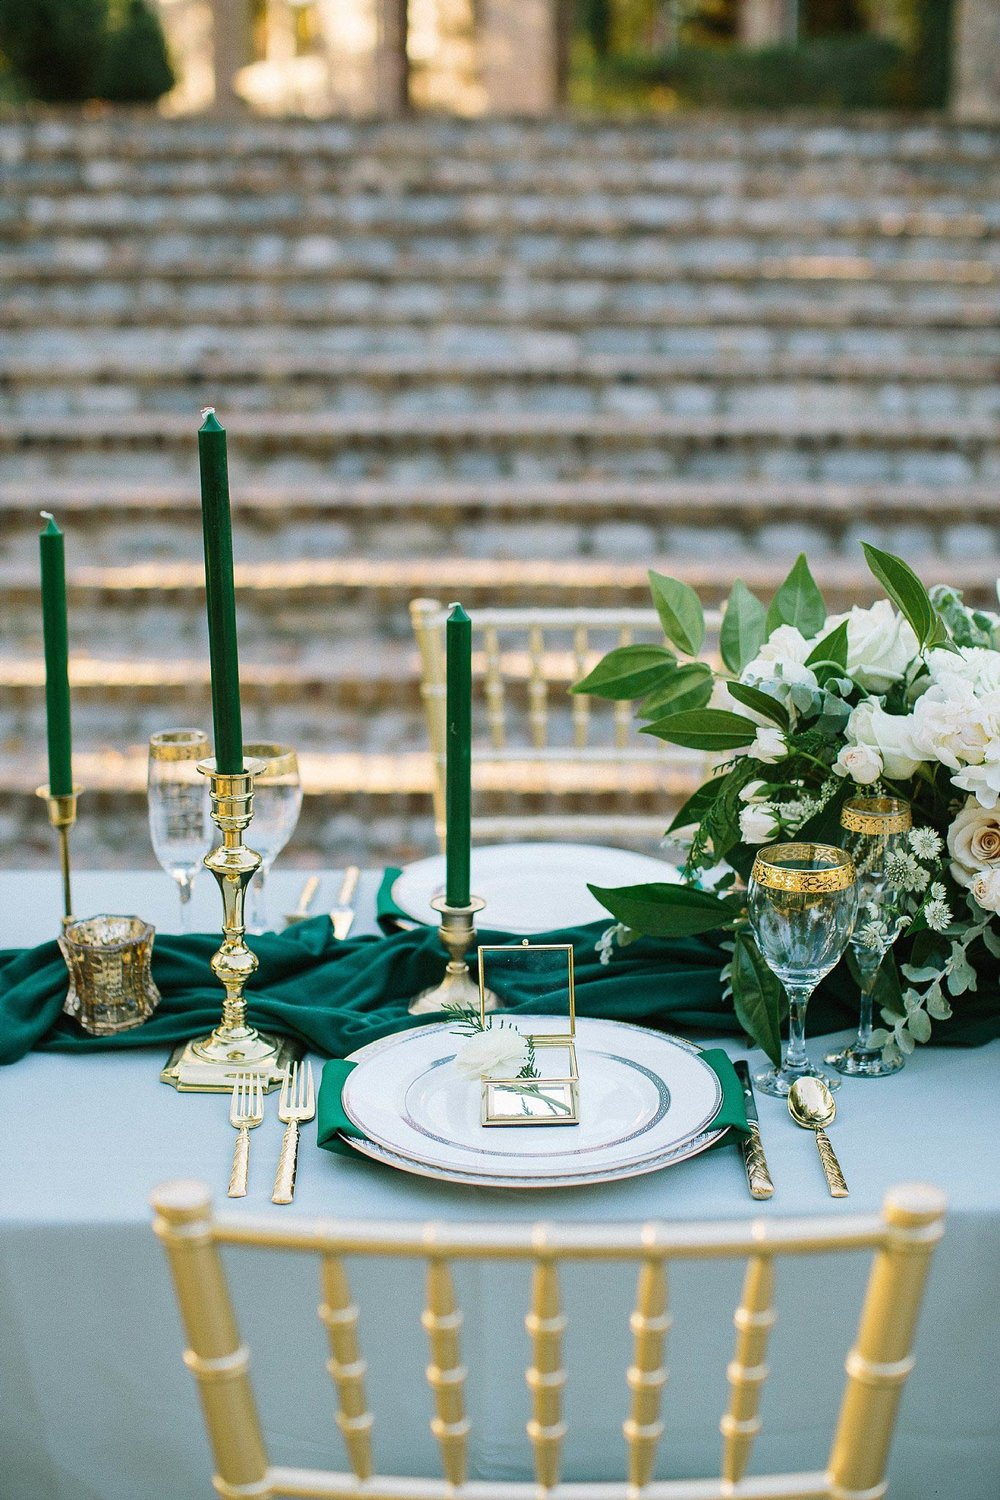 Greenery_Pantone-Color-of-the-Year-2017_Mansfield-TX_Aristide-Mansfield_Fort-Worth-and-Dallas-Wedding-Planner-and-Designer_Shannon-Rose-Events_0027.jpg